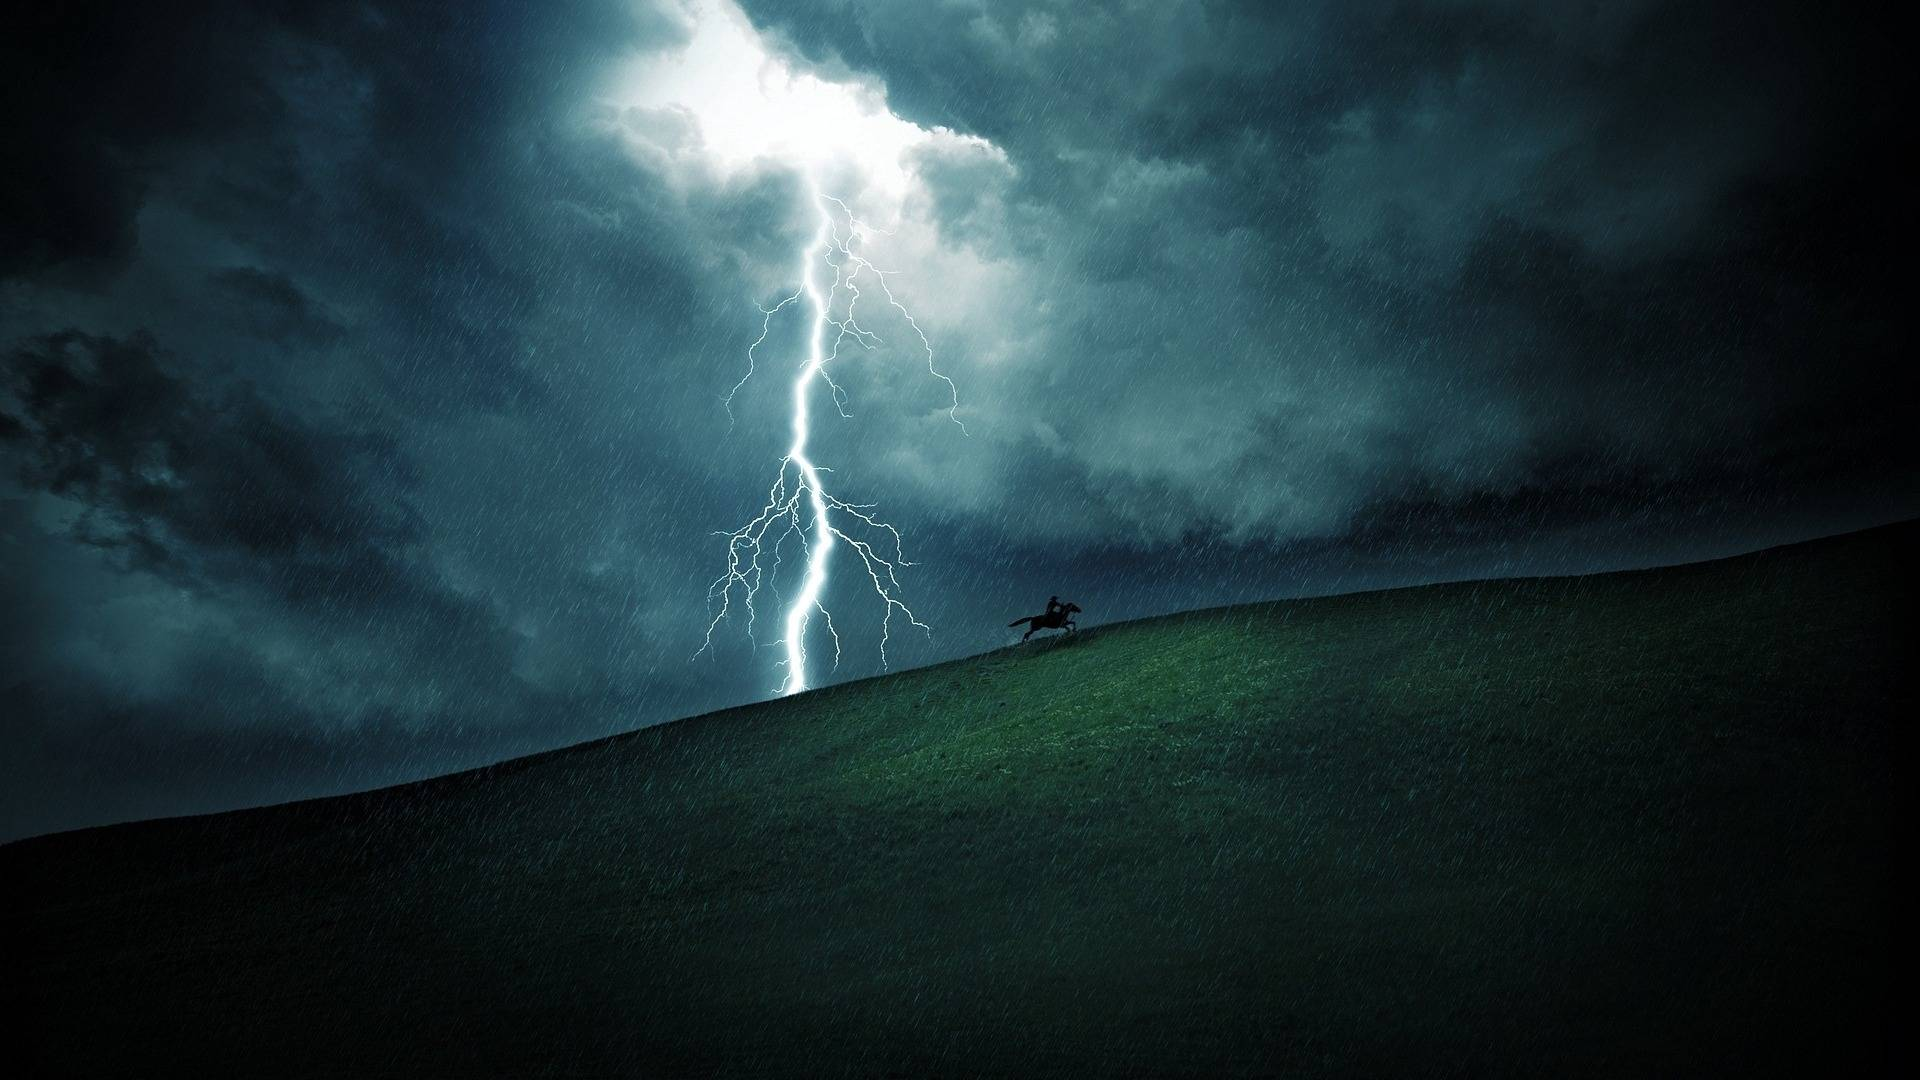 Free Thunderstorm Wallpapers